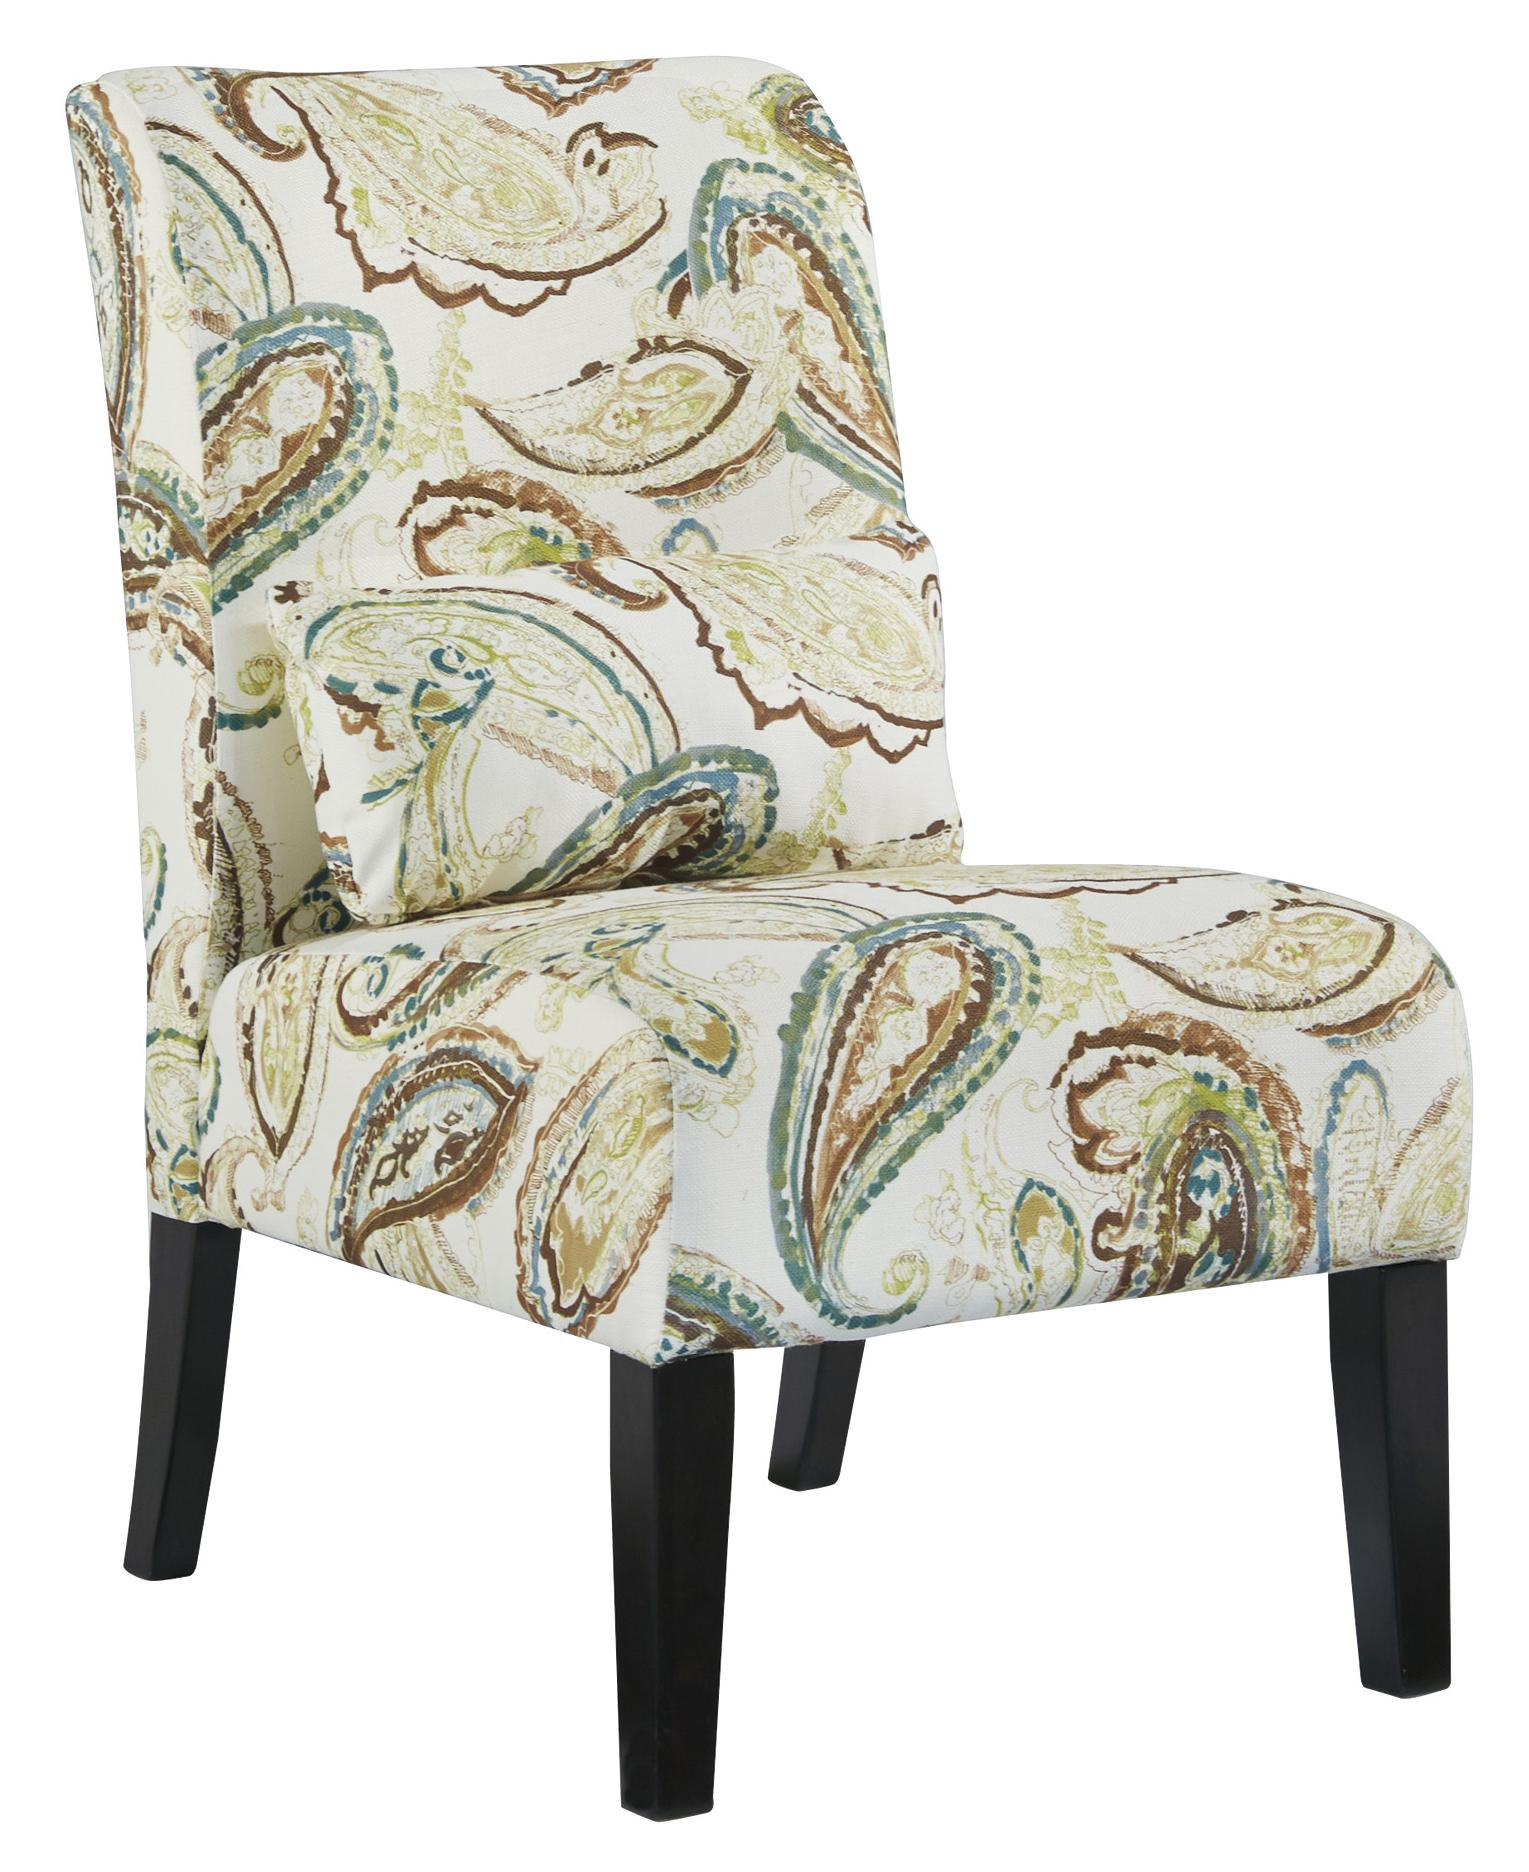 Paisley Chair Annora Paisley Transitional Armless Accent Chair With Pillow By Signature Design By Ashley At Household Furniture